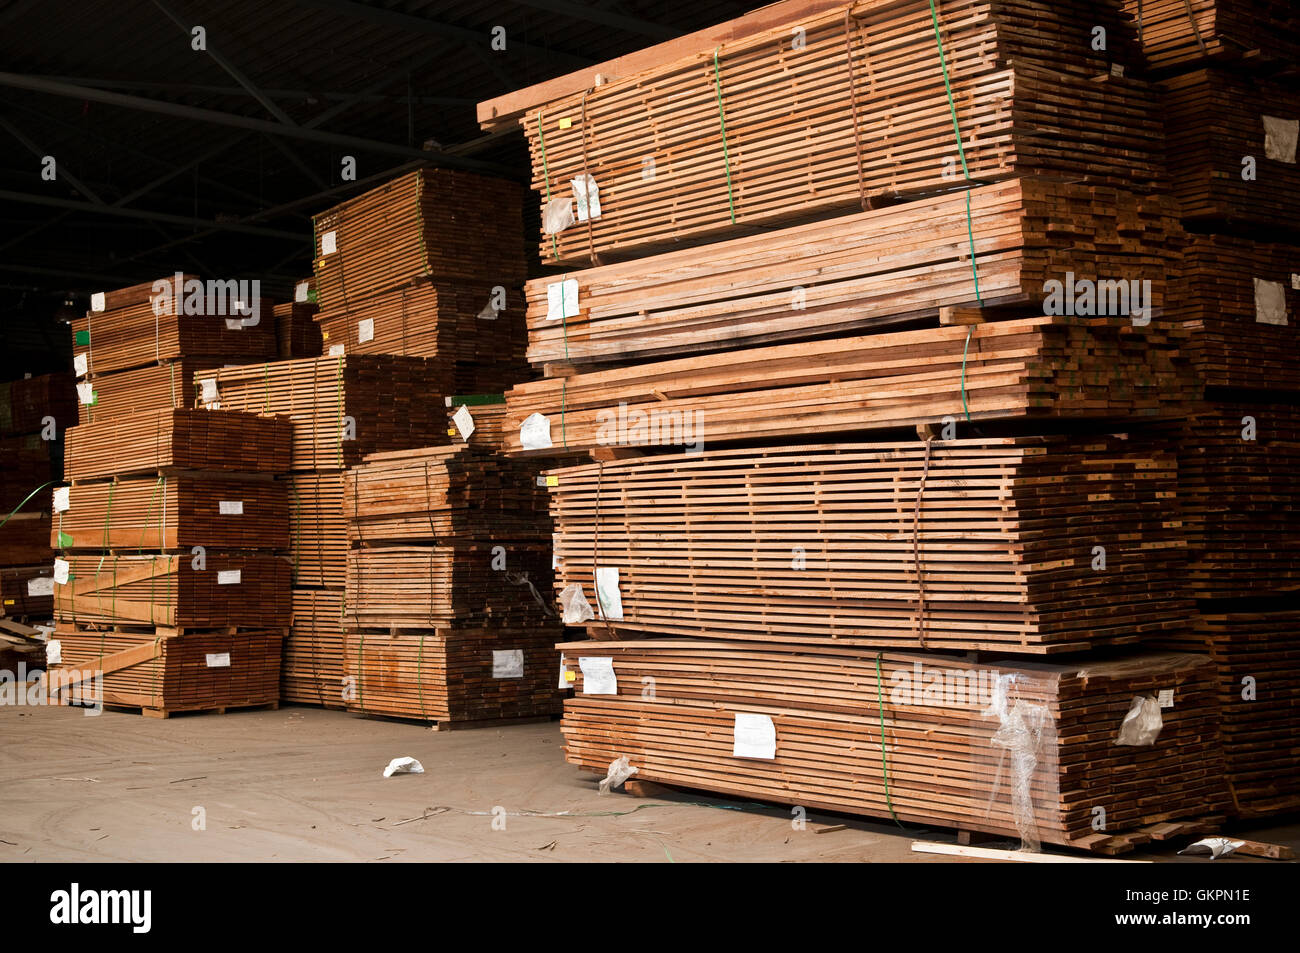 Large stacks of a hardwood planks Stock Photo